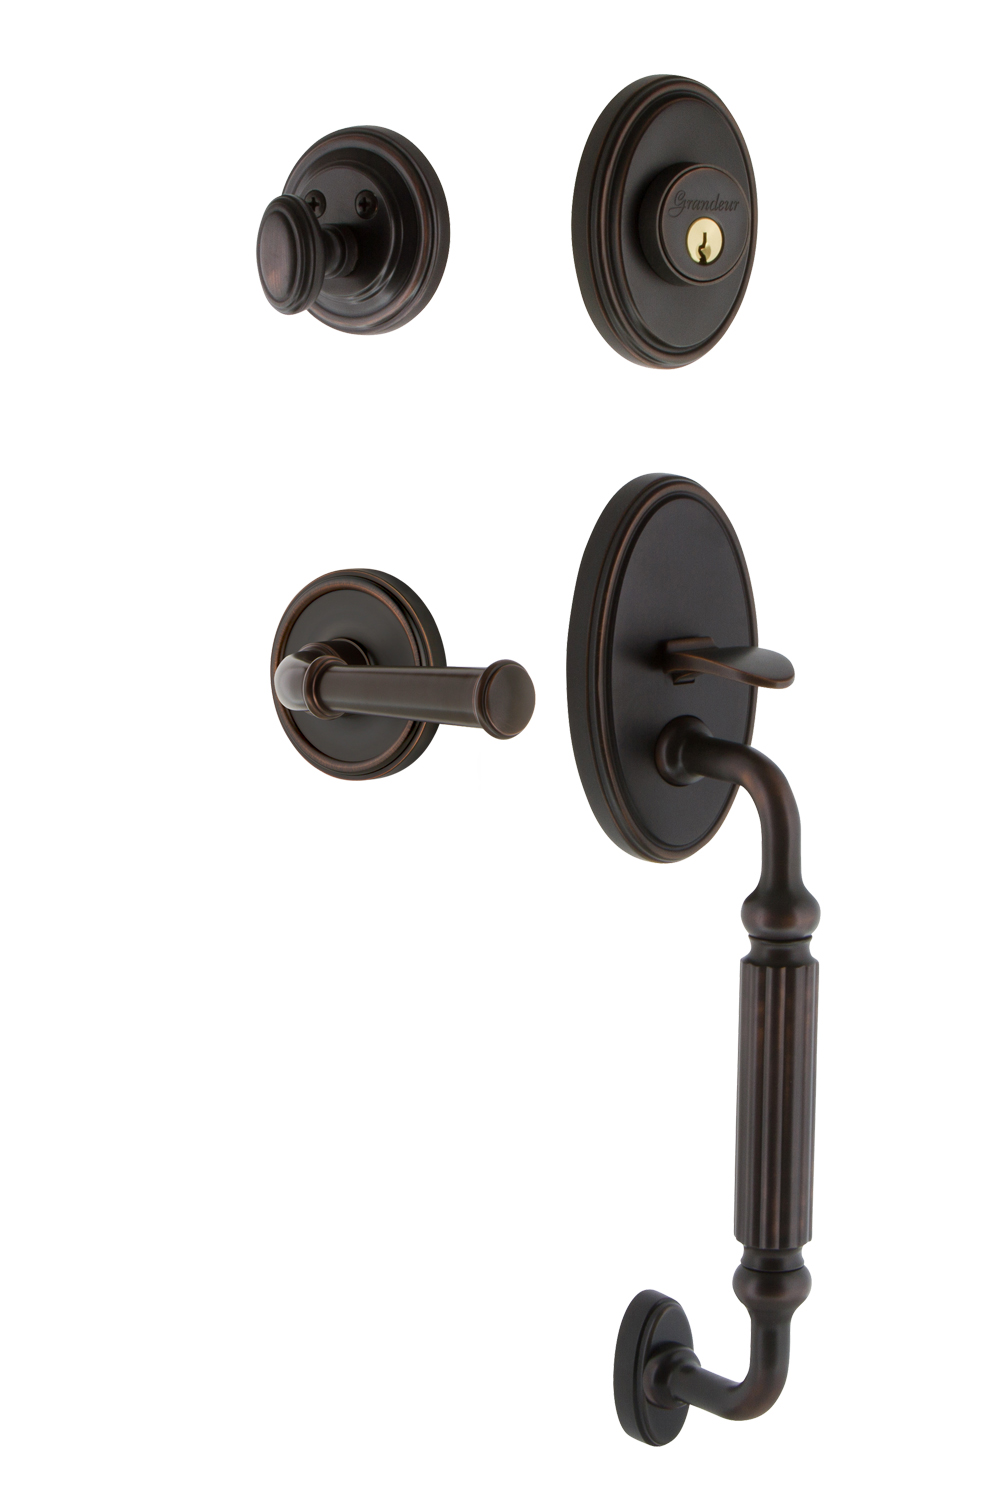 Grandeur Georgetown Handleset with F Grip and Georgetown Interior Plates